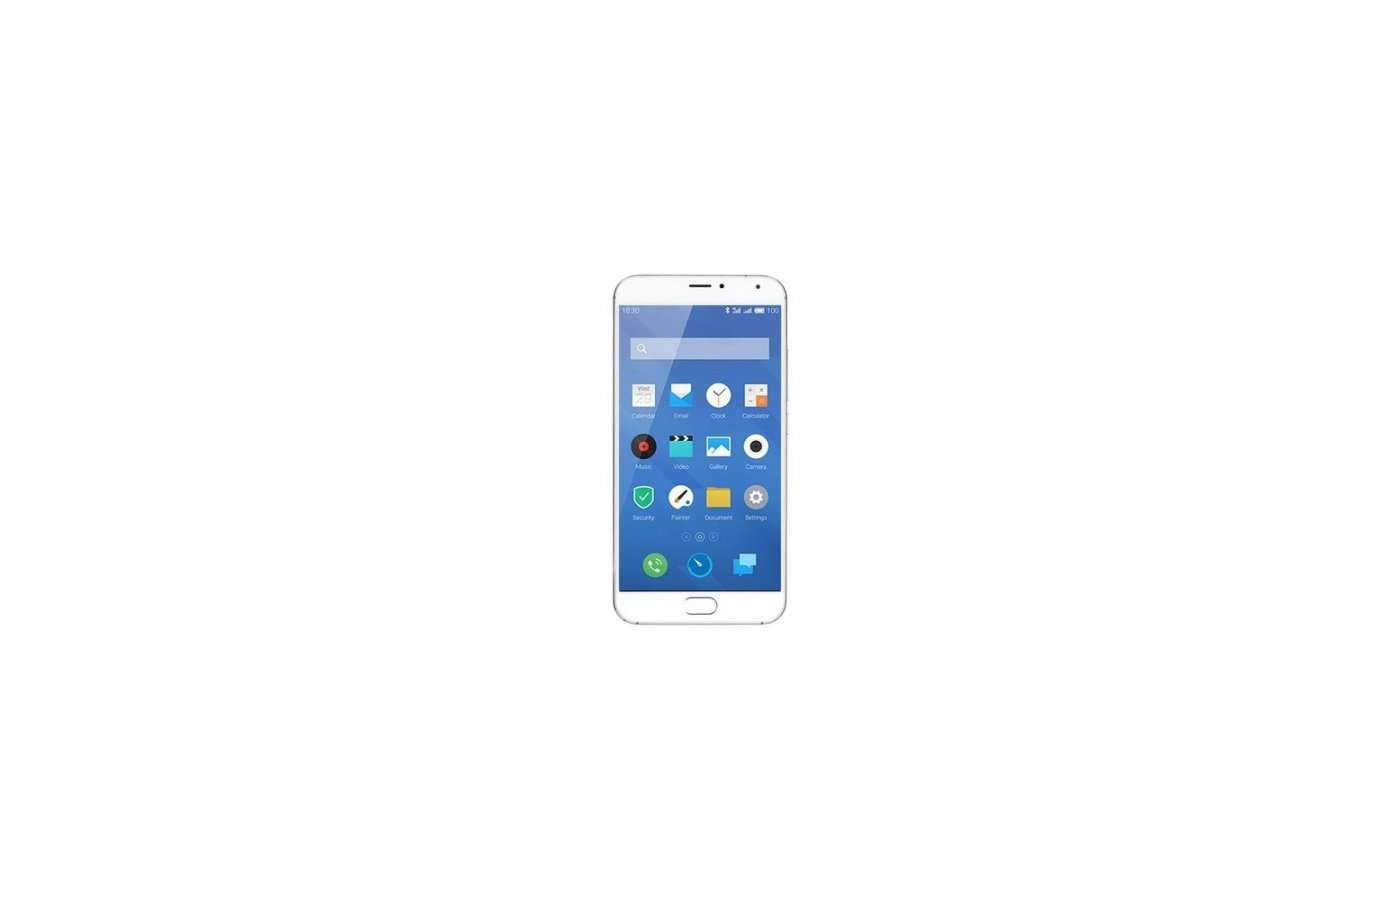 Смартфон Meizu MX5 gold back/white front 16Gb